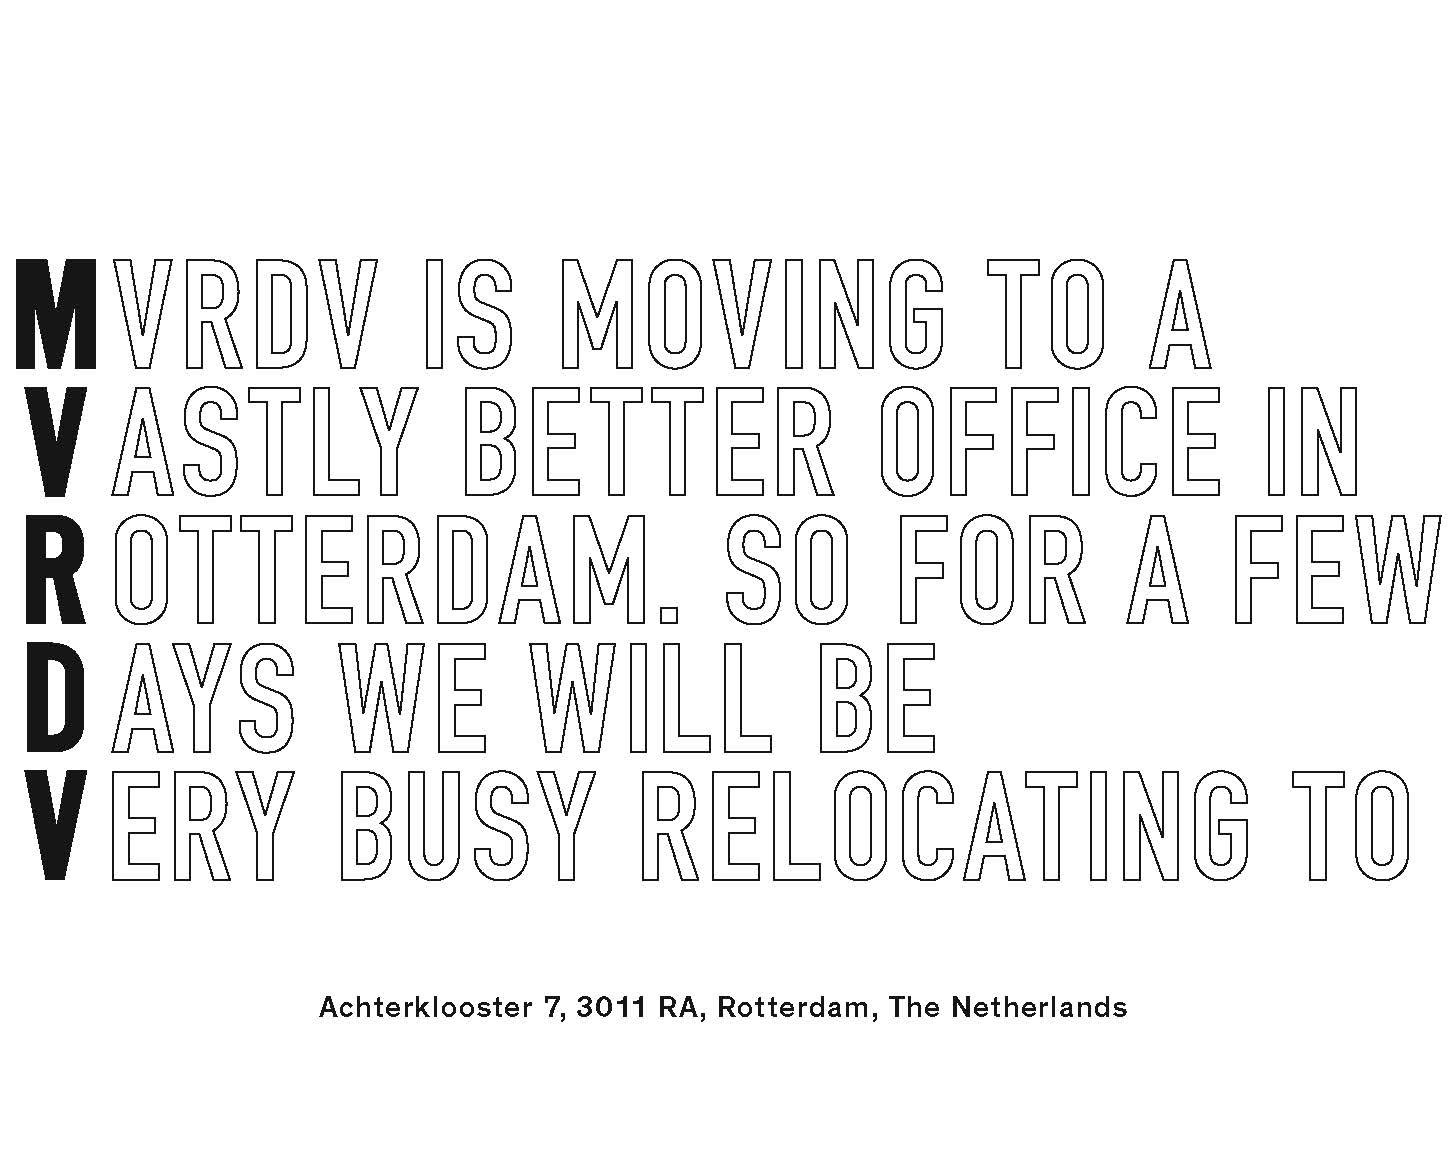 MVRDV are moving offices